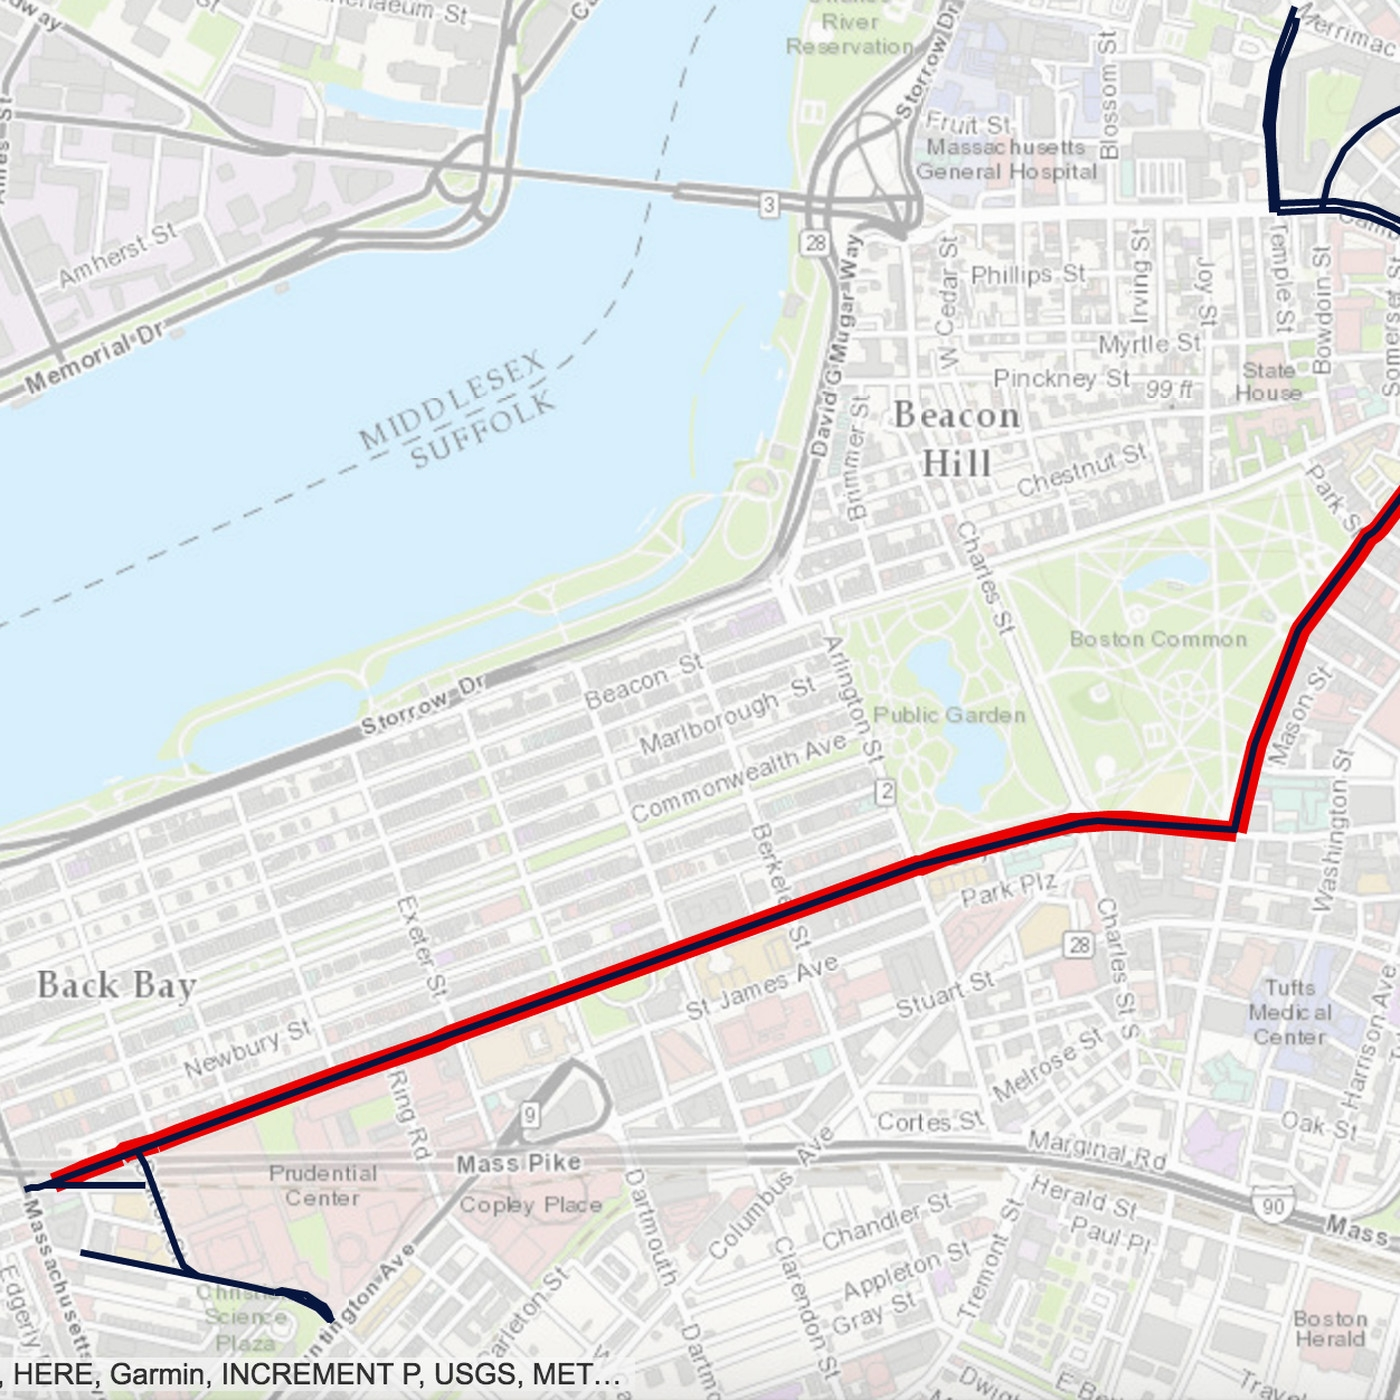 Patriots Super Bowl Parade 2017: Map, Route, And Road intended for Super Bowl Parade Route Map